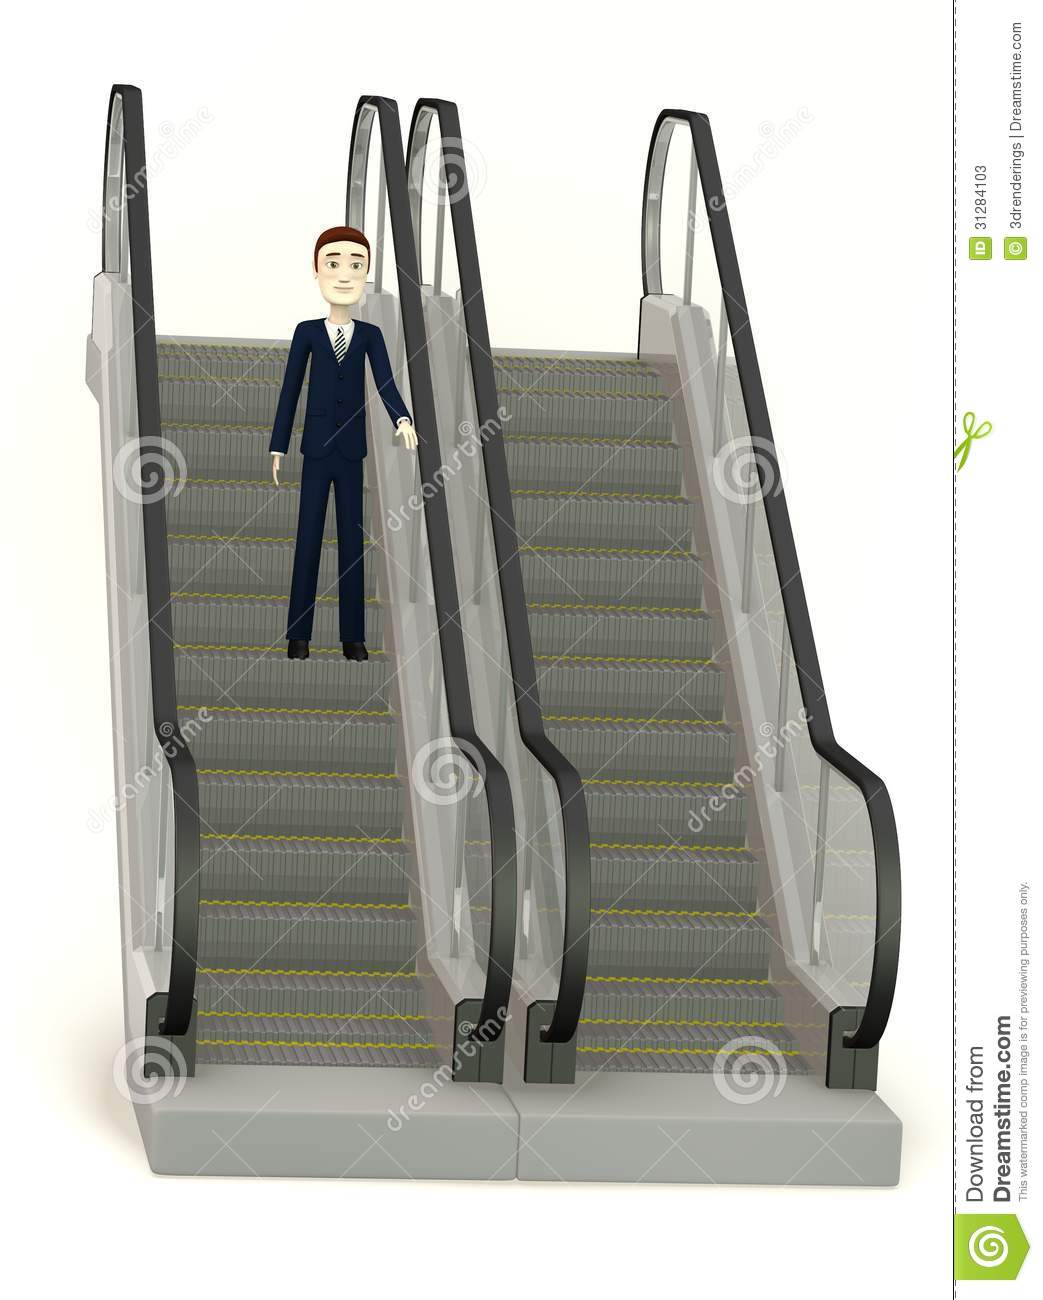 Cartoon Businessman On Escalator Stock Photos Image  : cartoon businessman escalator d render 31284103 <strong>Cool</strong> Office Chairs from www.dreamstime.com size 1043 x 1300 jpeg 102kB